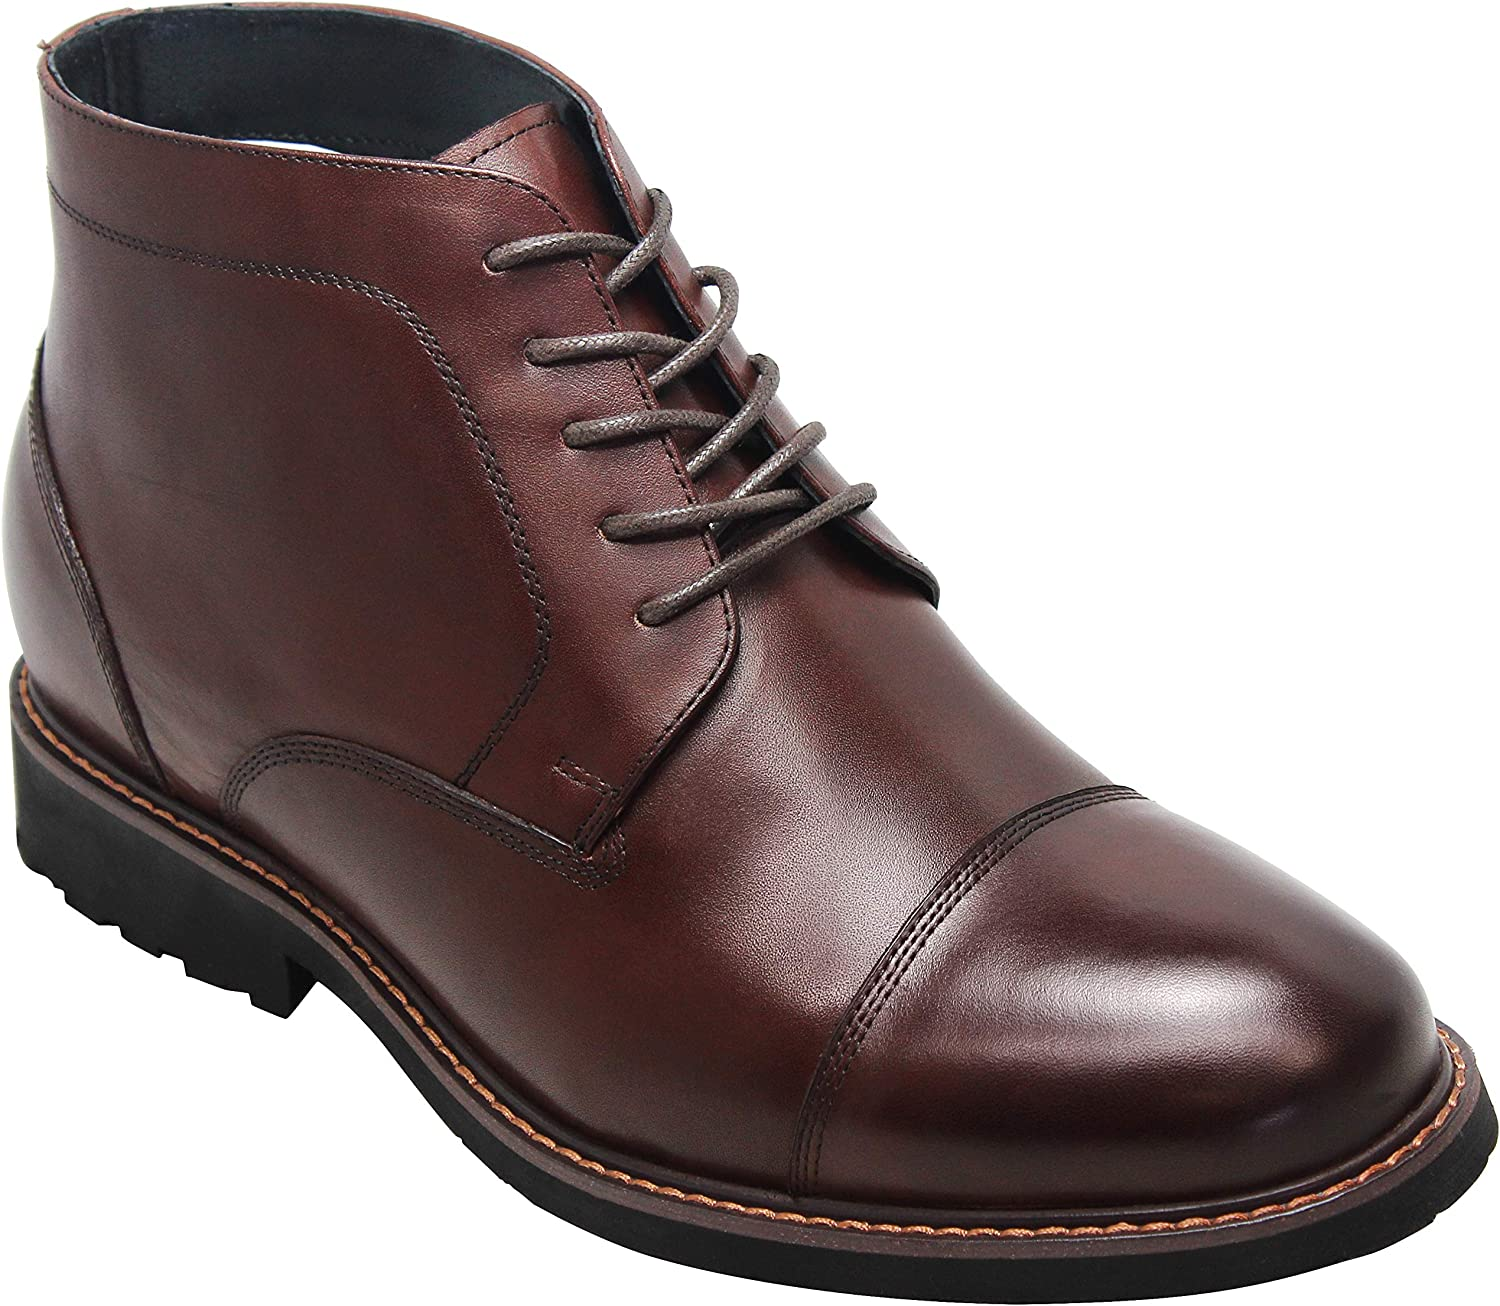 CALTO Men's Invisible Height Increasing Elevator shoes - Dark Brown Leather Lace-up Cap-Toe Boots with Inner Faux Fur - 3.2 Inches Taller - Y41081